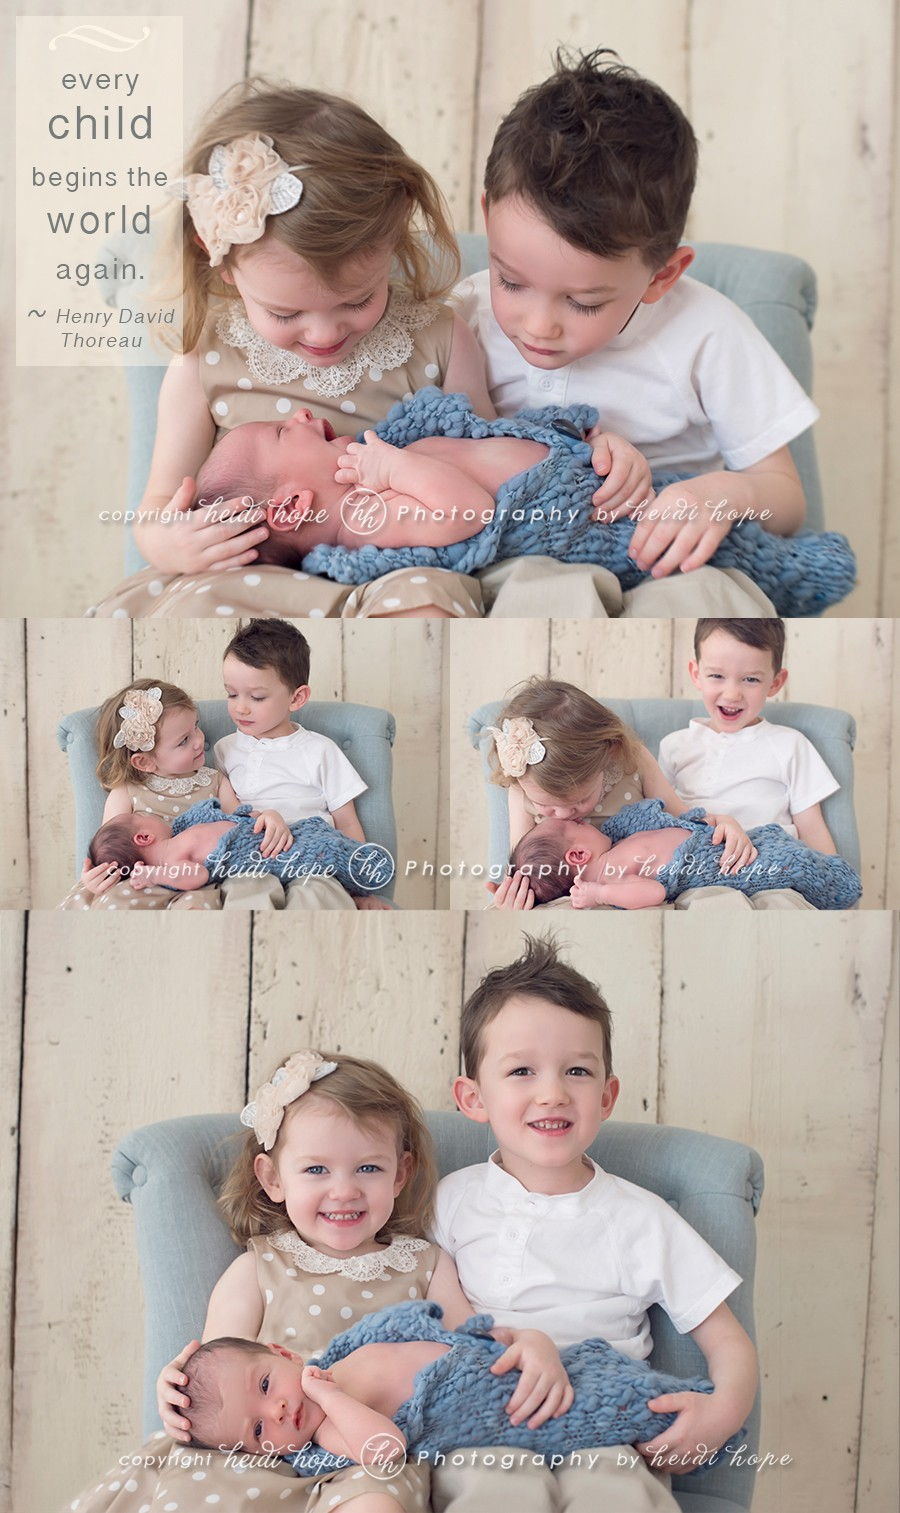 Newborn Pictures with Siblings http://www.heidihope.com/blog/newborn-baby-c-is-welcomed-by-his-family-massachusetts-newborn-and-family-photographer/